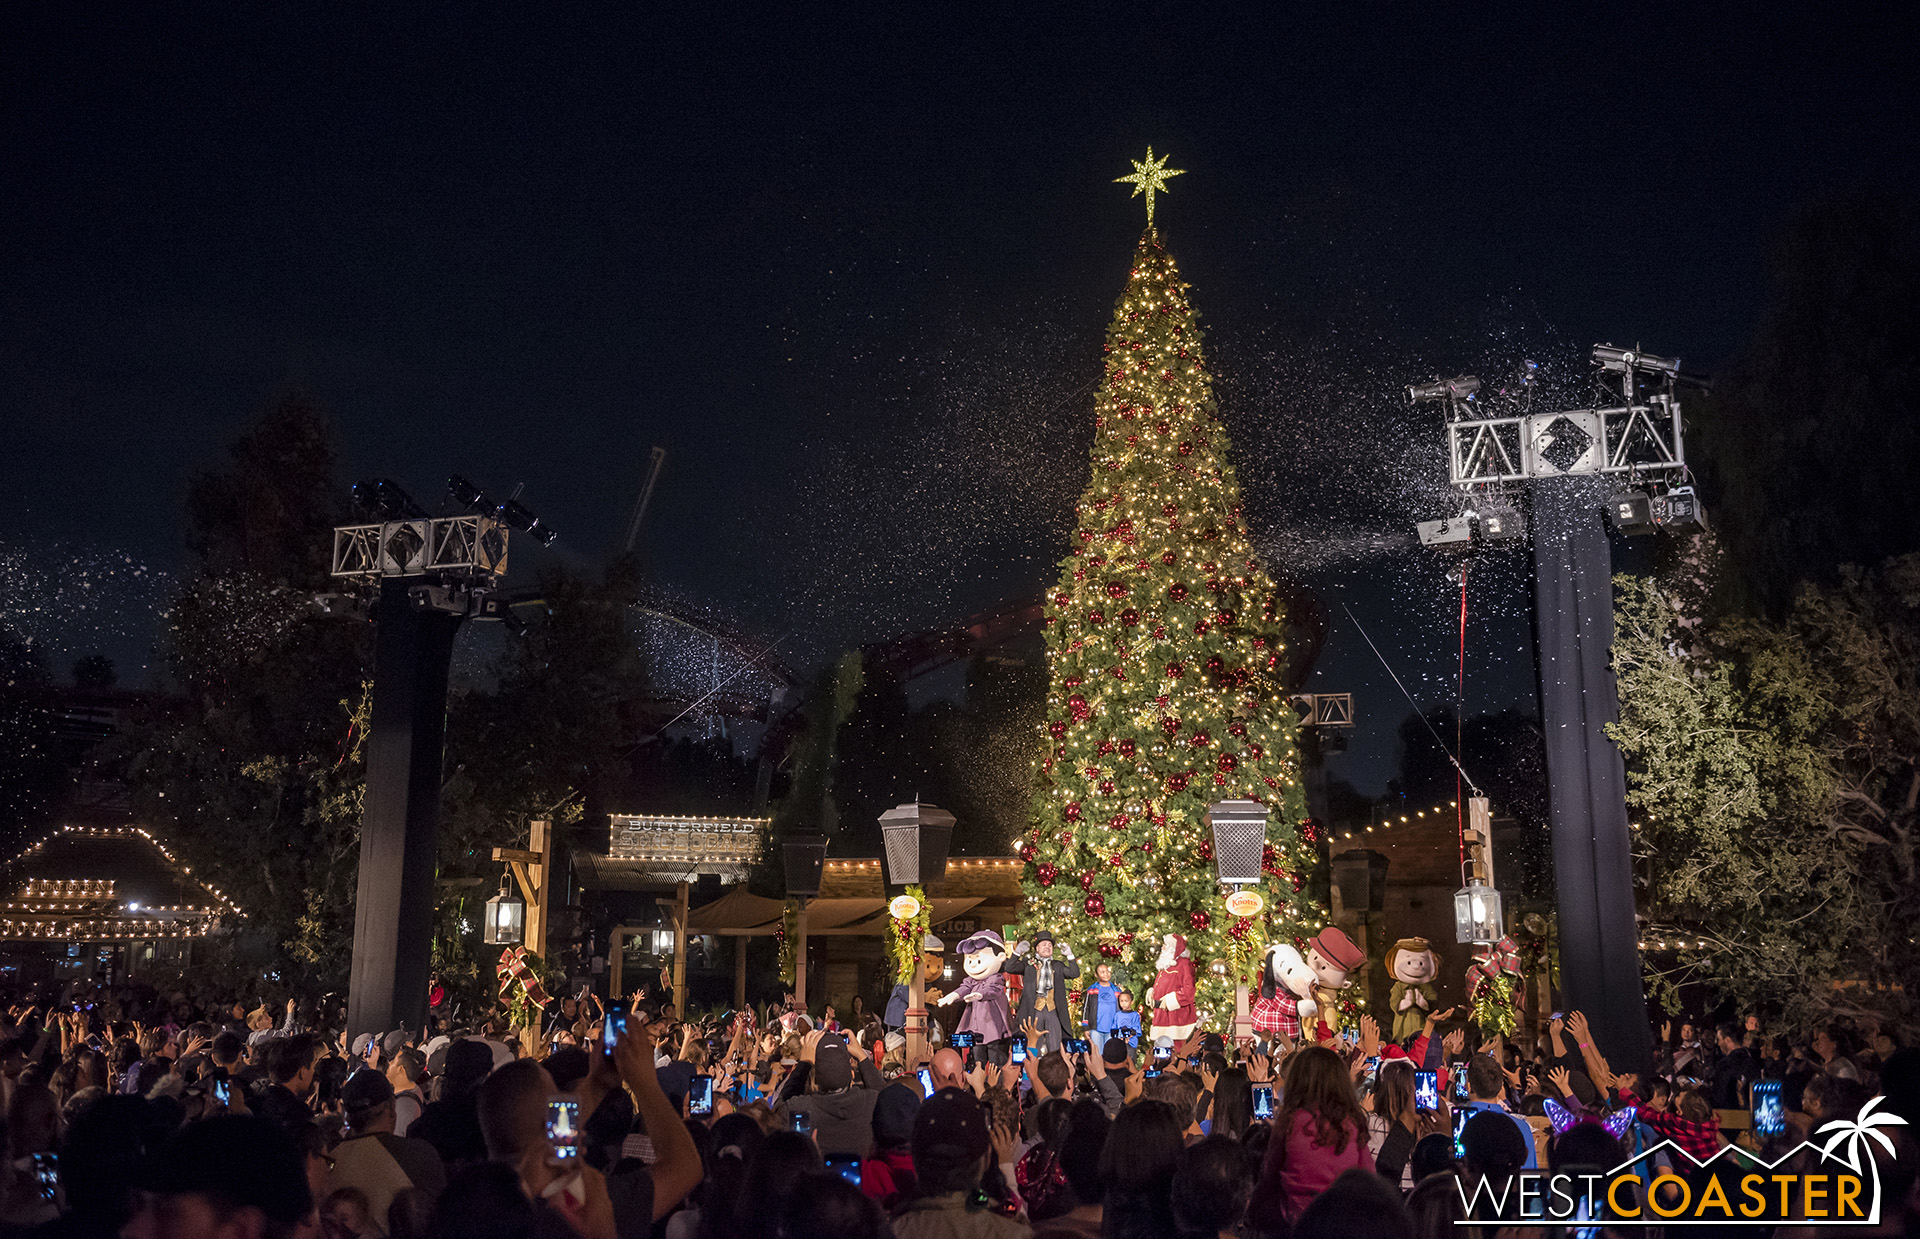 The tree lights up with the energy of the spirit of Christmas!